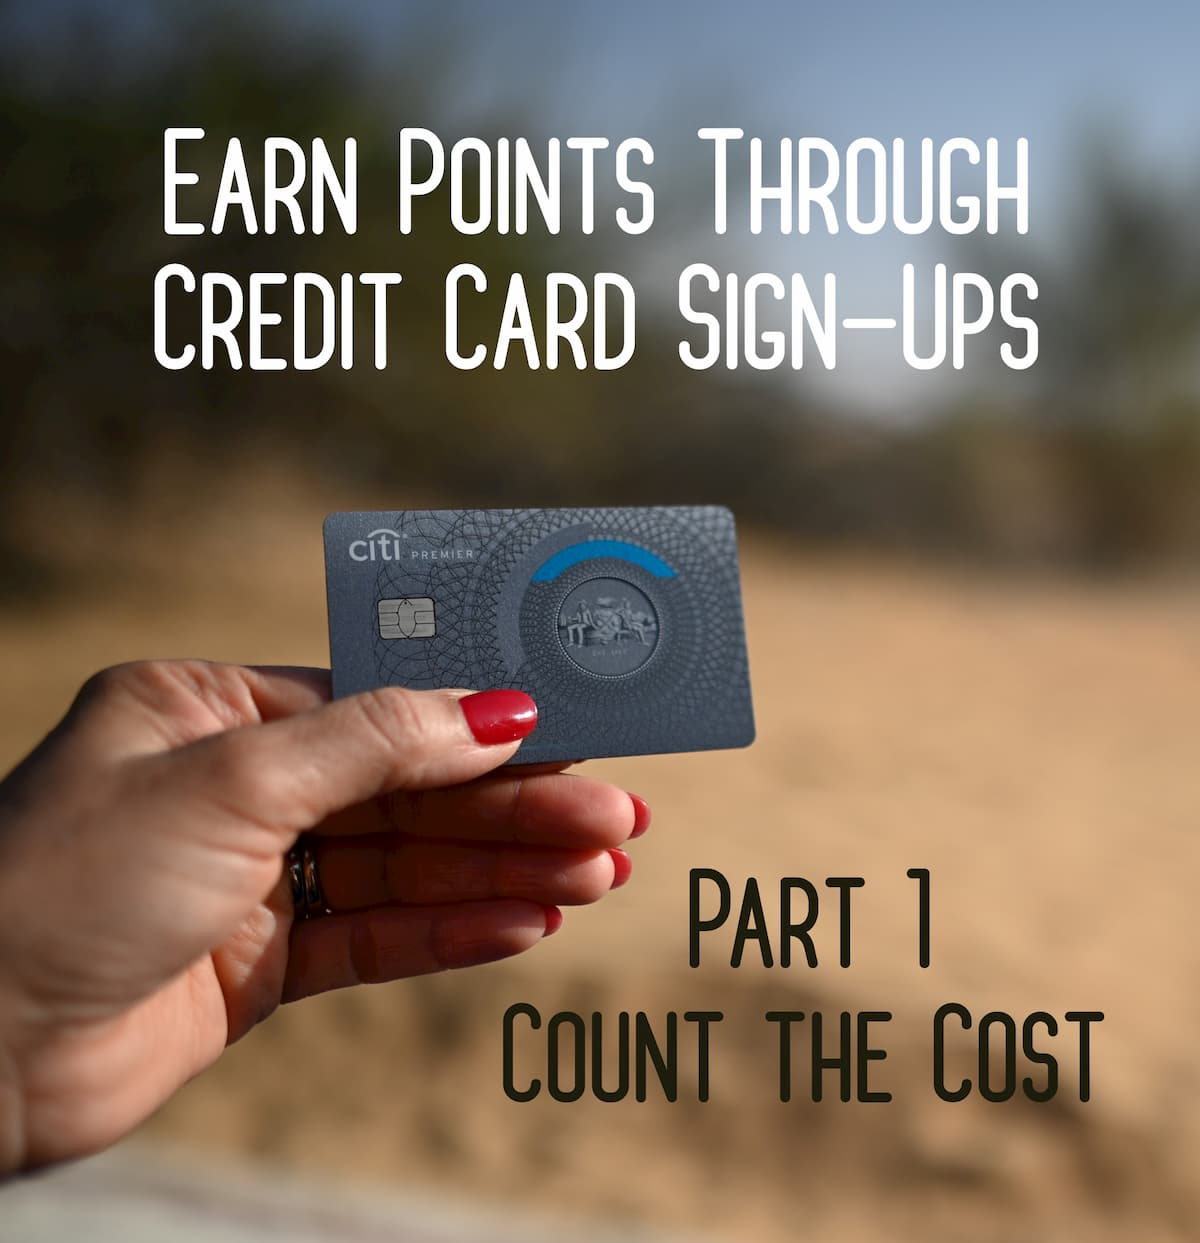 Earn Points Through Credit Card Sign Ups- Part 1: Count the Cost